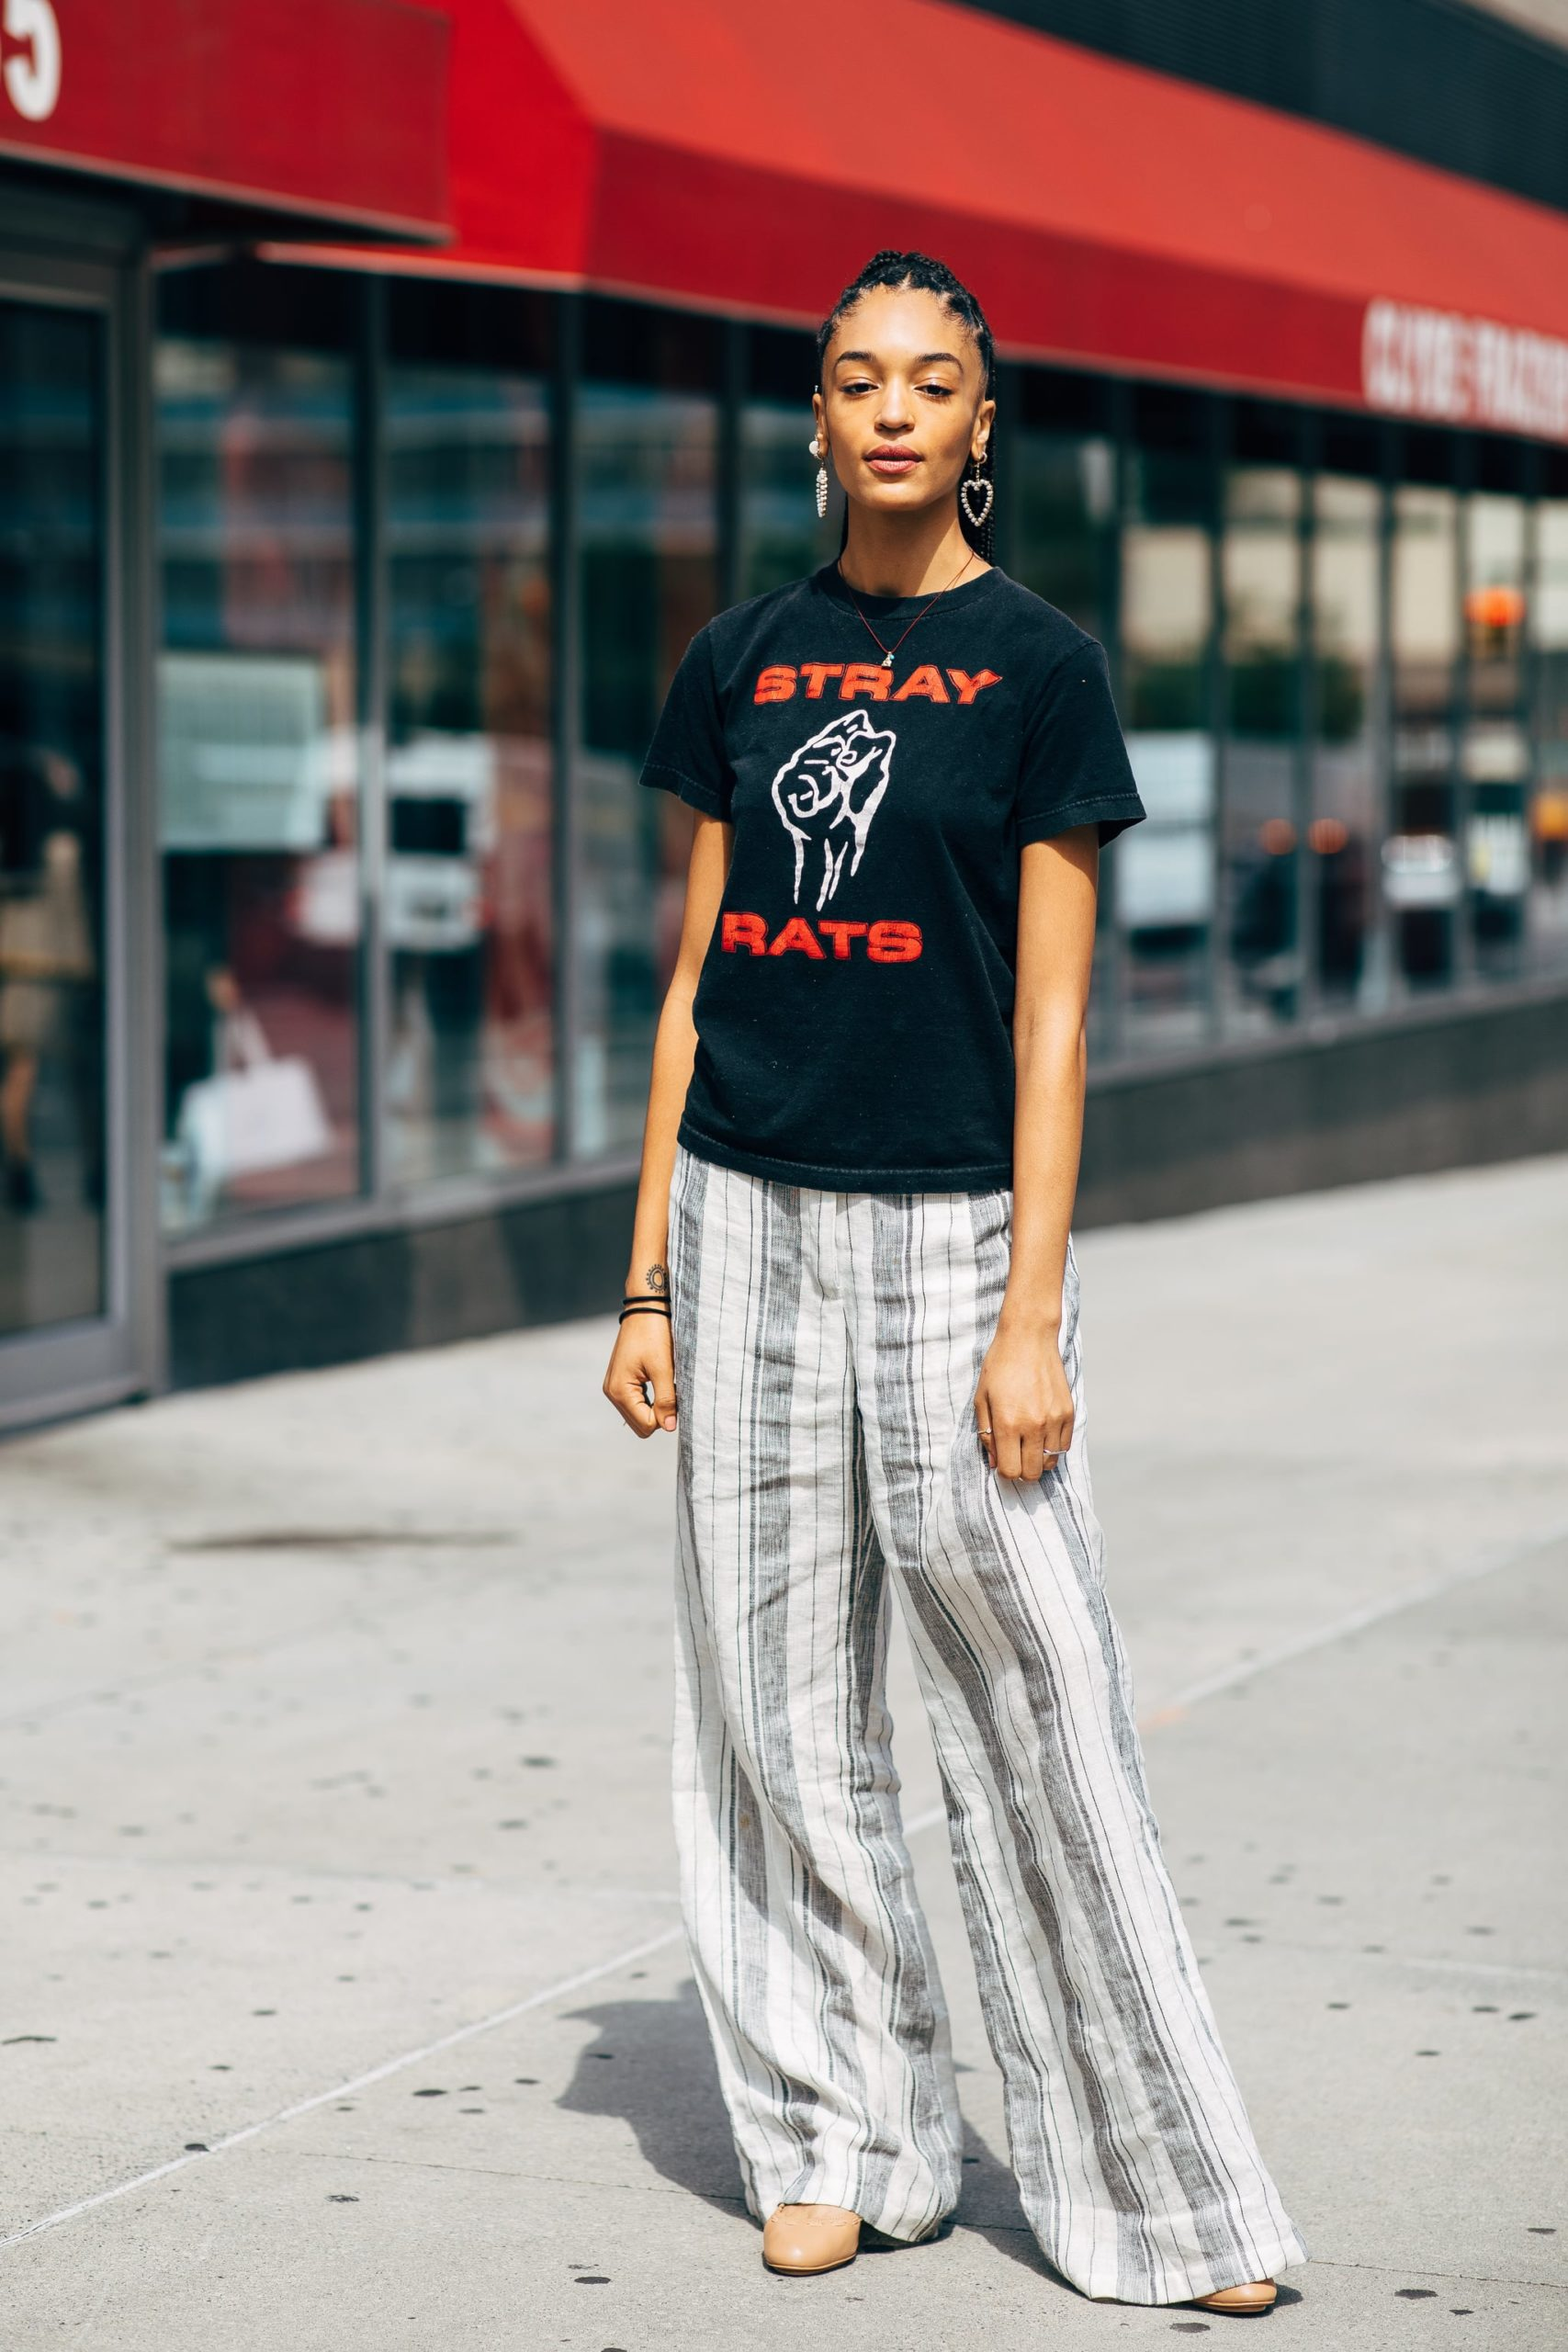 Women Patterned pants with graphic t-shirt